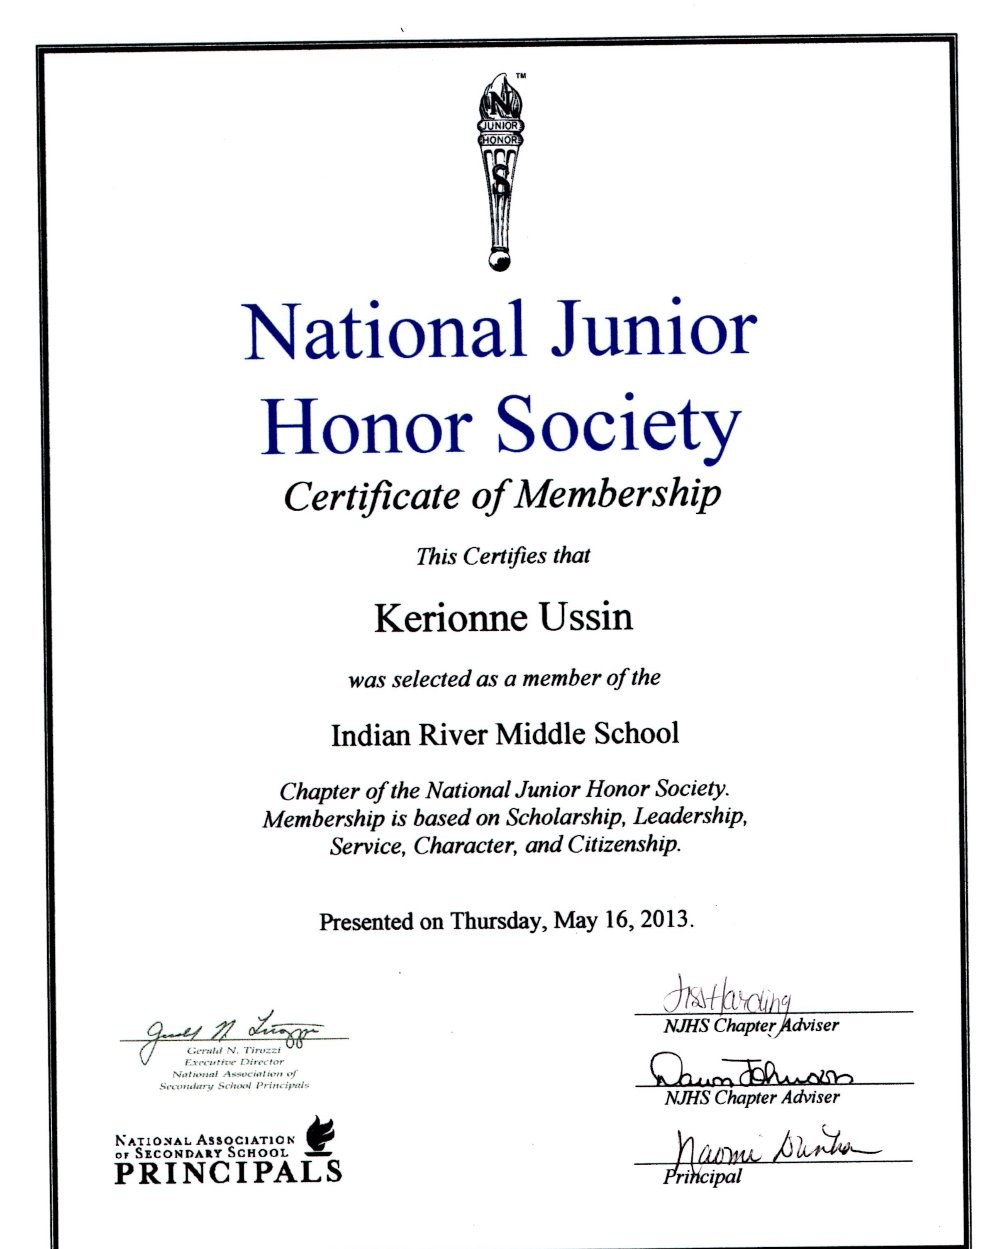 perfect national honor society essay View essay - national honor society essay from english 141 at duke aaron lowry national honor society induction essay i feel that i, aaron lowry, should be inducted into mount saint josephs chapter.